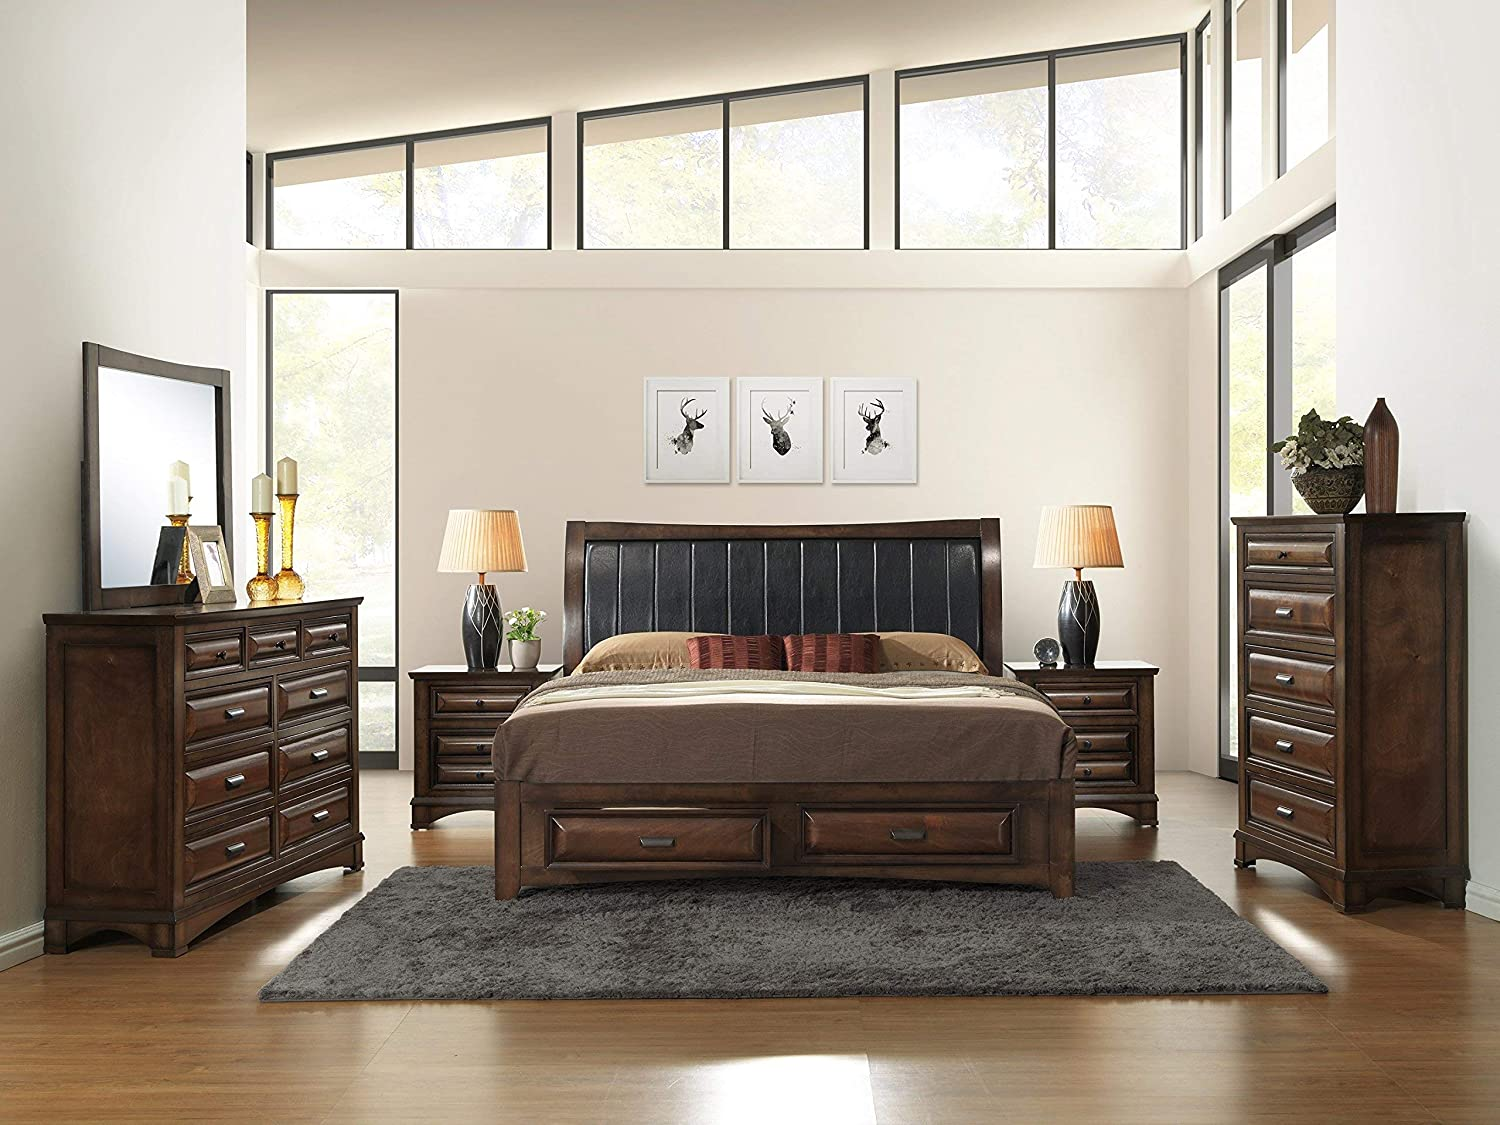 Amazon Com Roundhill Furniture Broval 179 Light Espresso Finish Queen Storage Bed Dresser Mirror 2 Night Stands Chest Wood Bed Room Set Furniture Decor